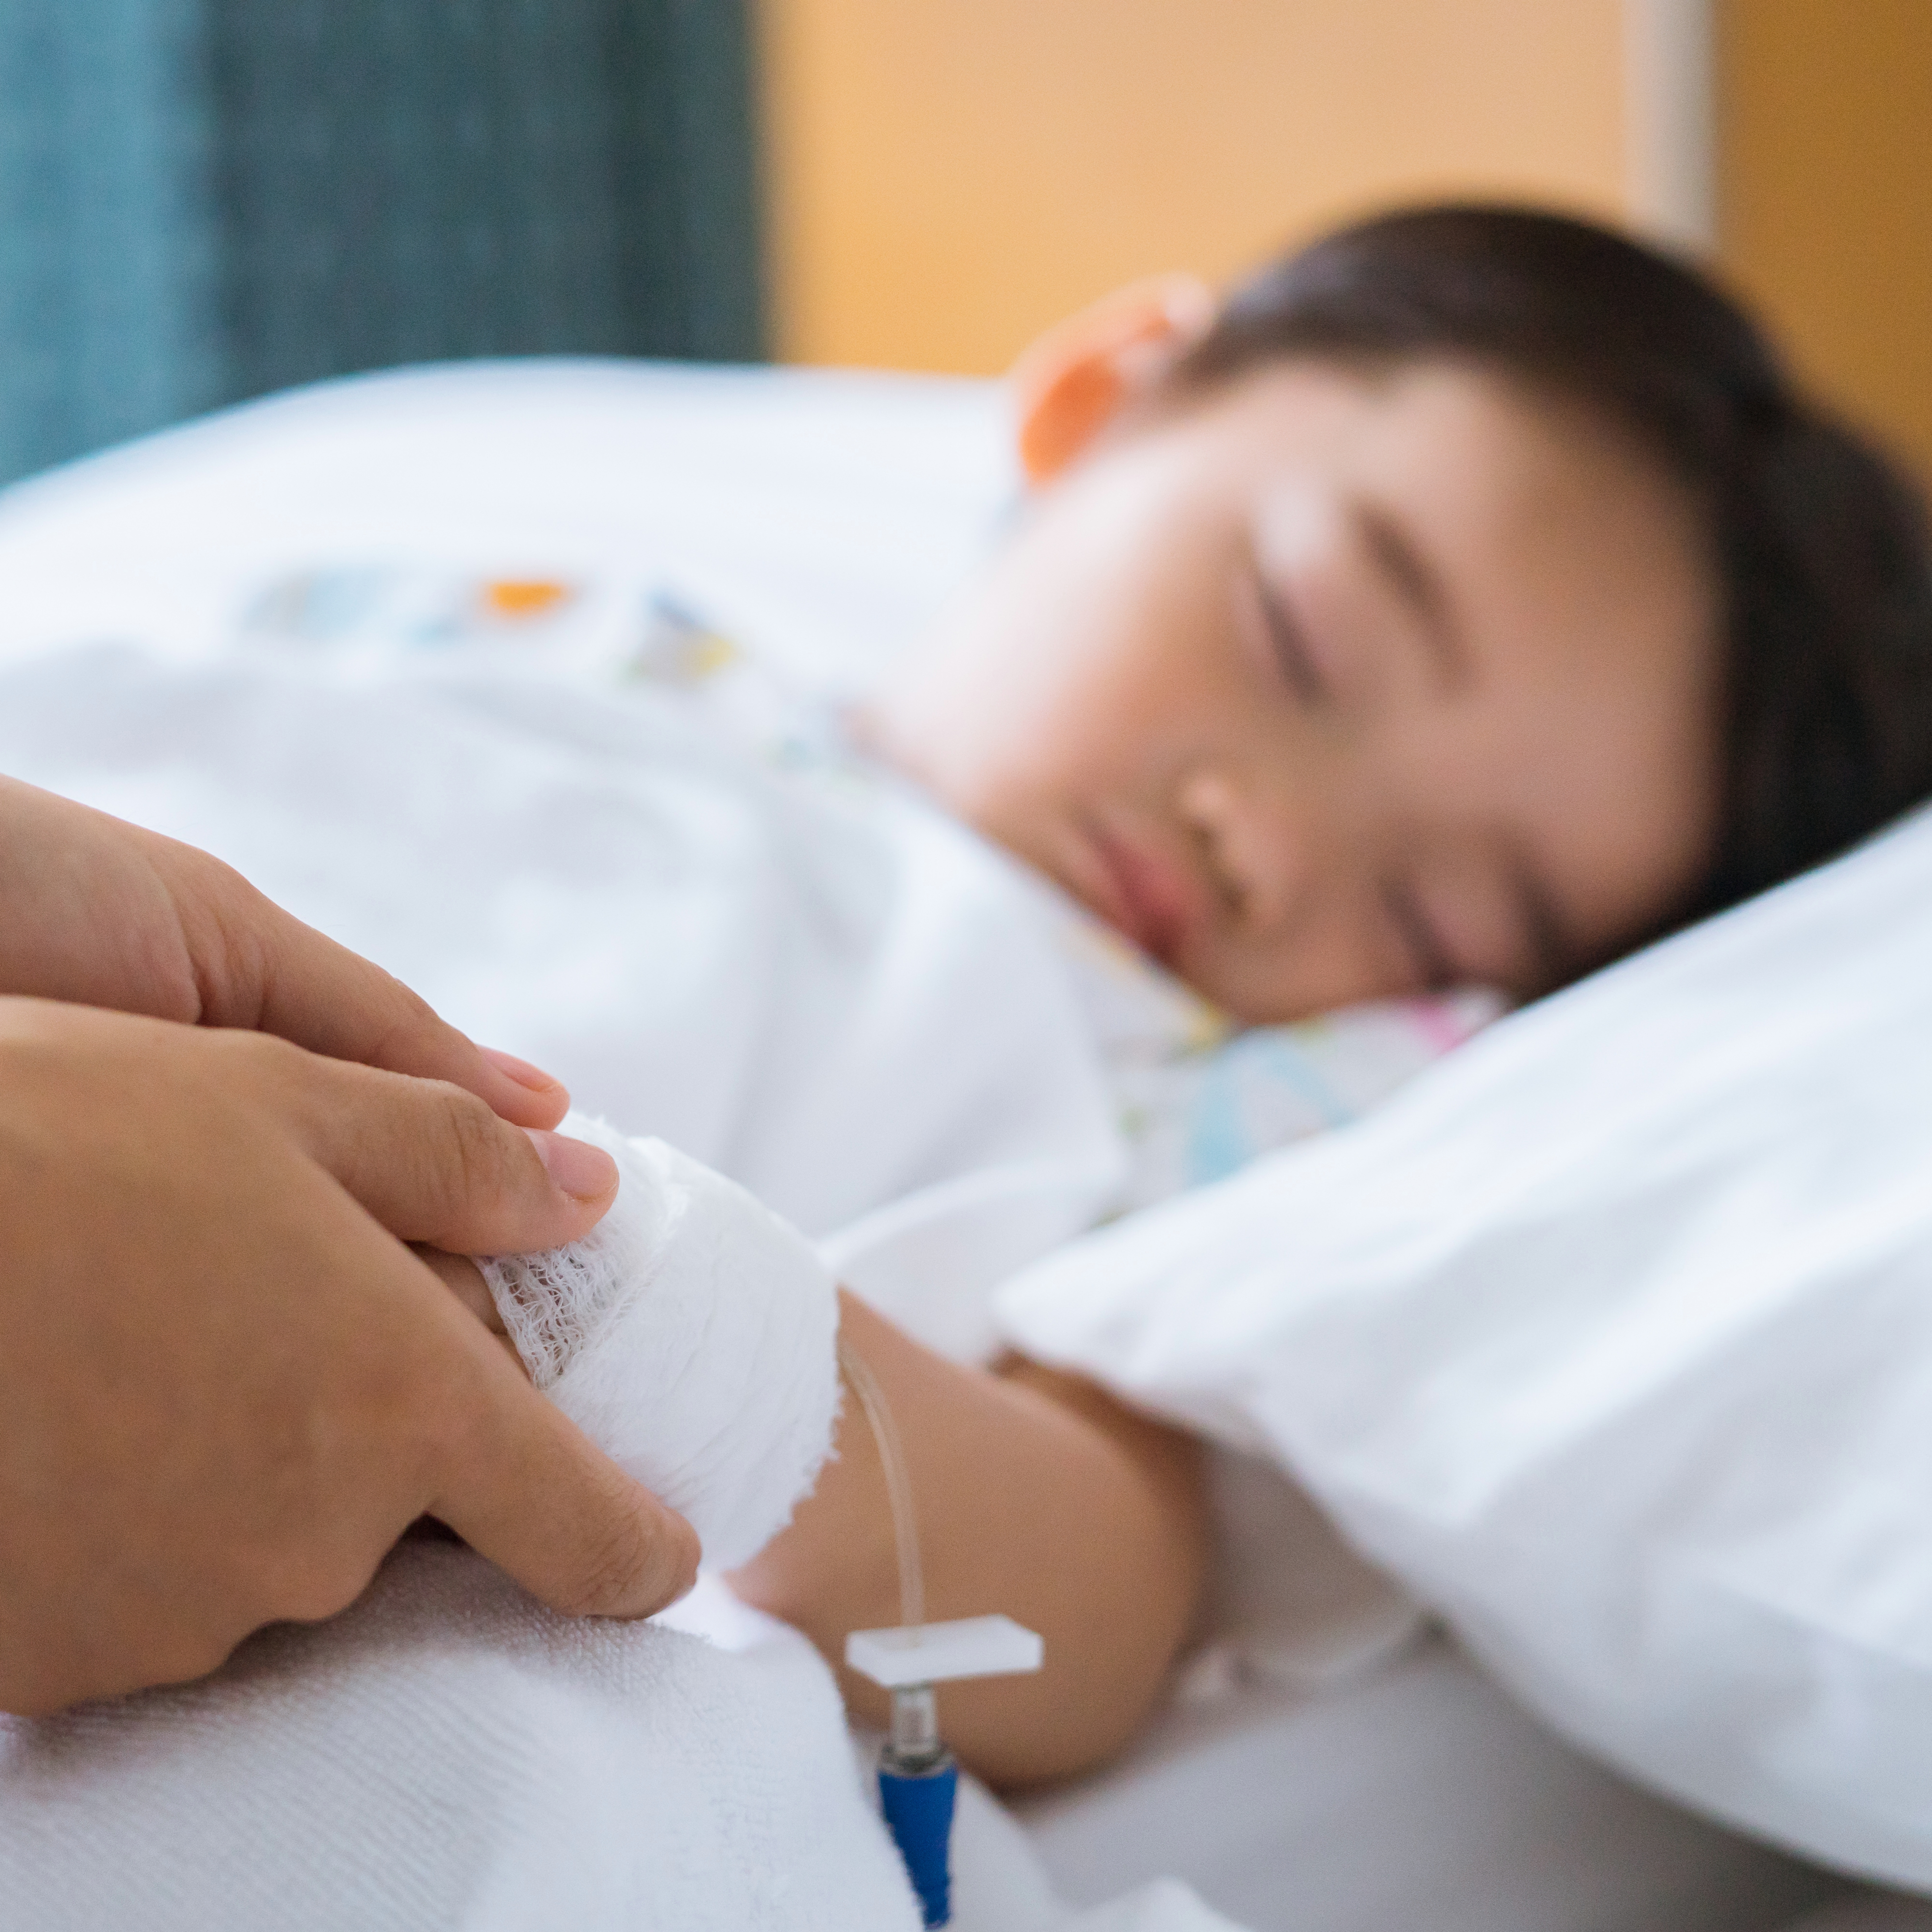 a sick little boy lying in a hospital bed with a bandage and IV and an adult holding his hand to comfort him